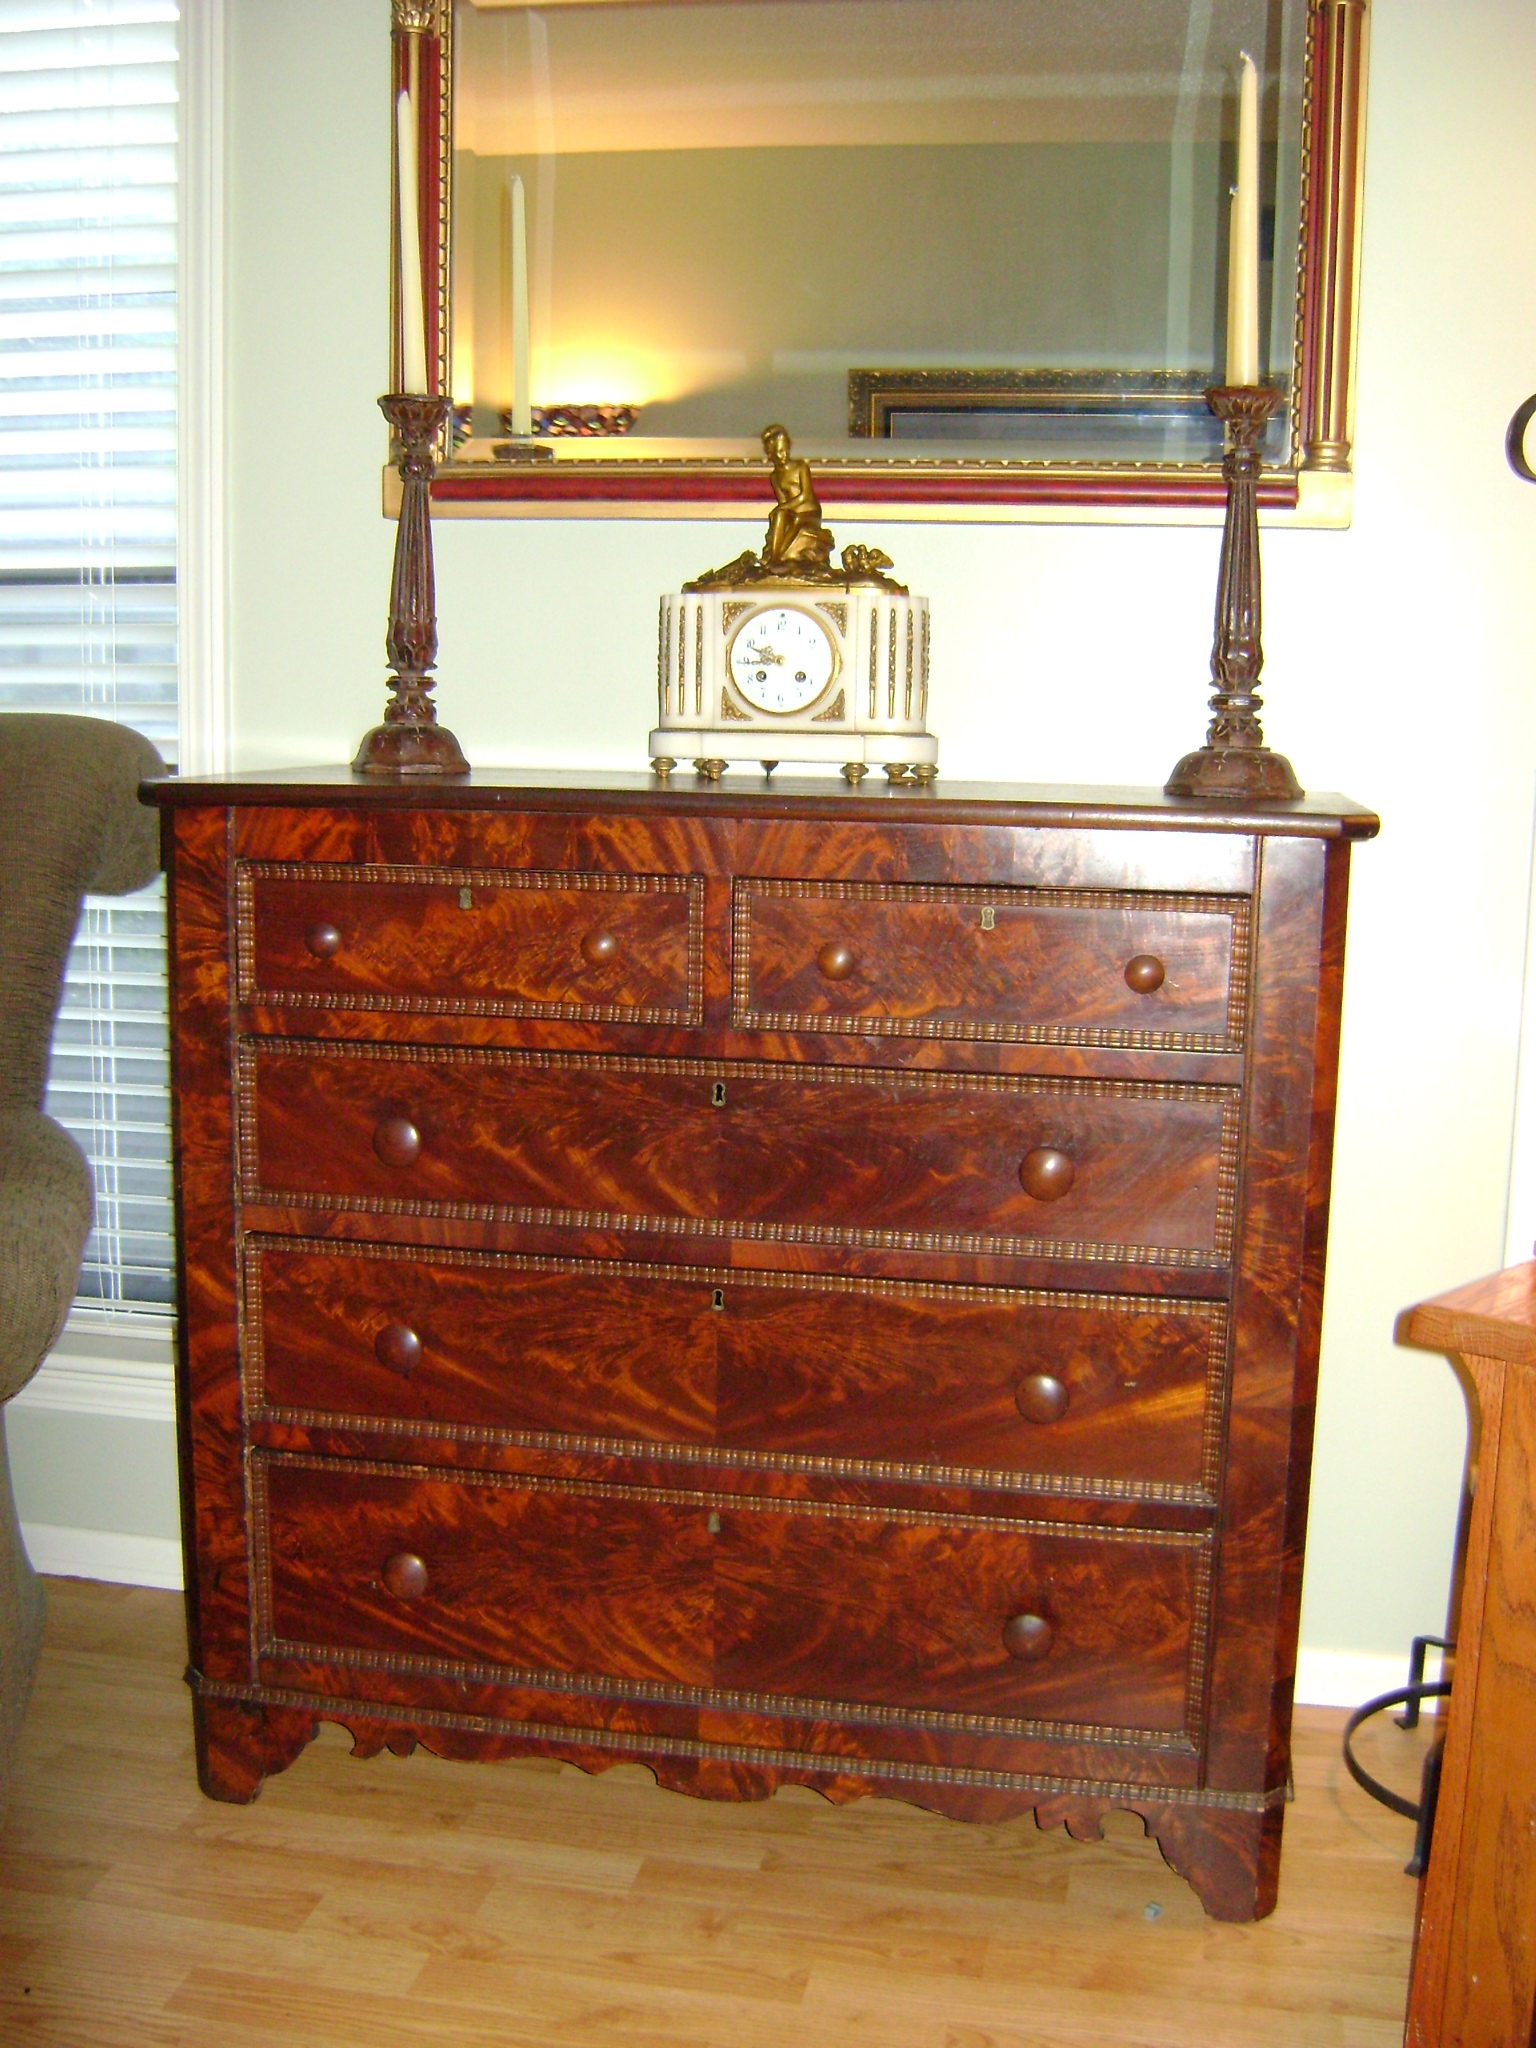 With 20+ years of experience in antiques, Copeland Estate sales has much  experience on the hundreds of sub-categories within this market. - Antique Furniture & Contents Copeland Estate Sales, Memphis' Most